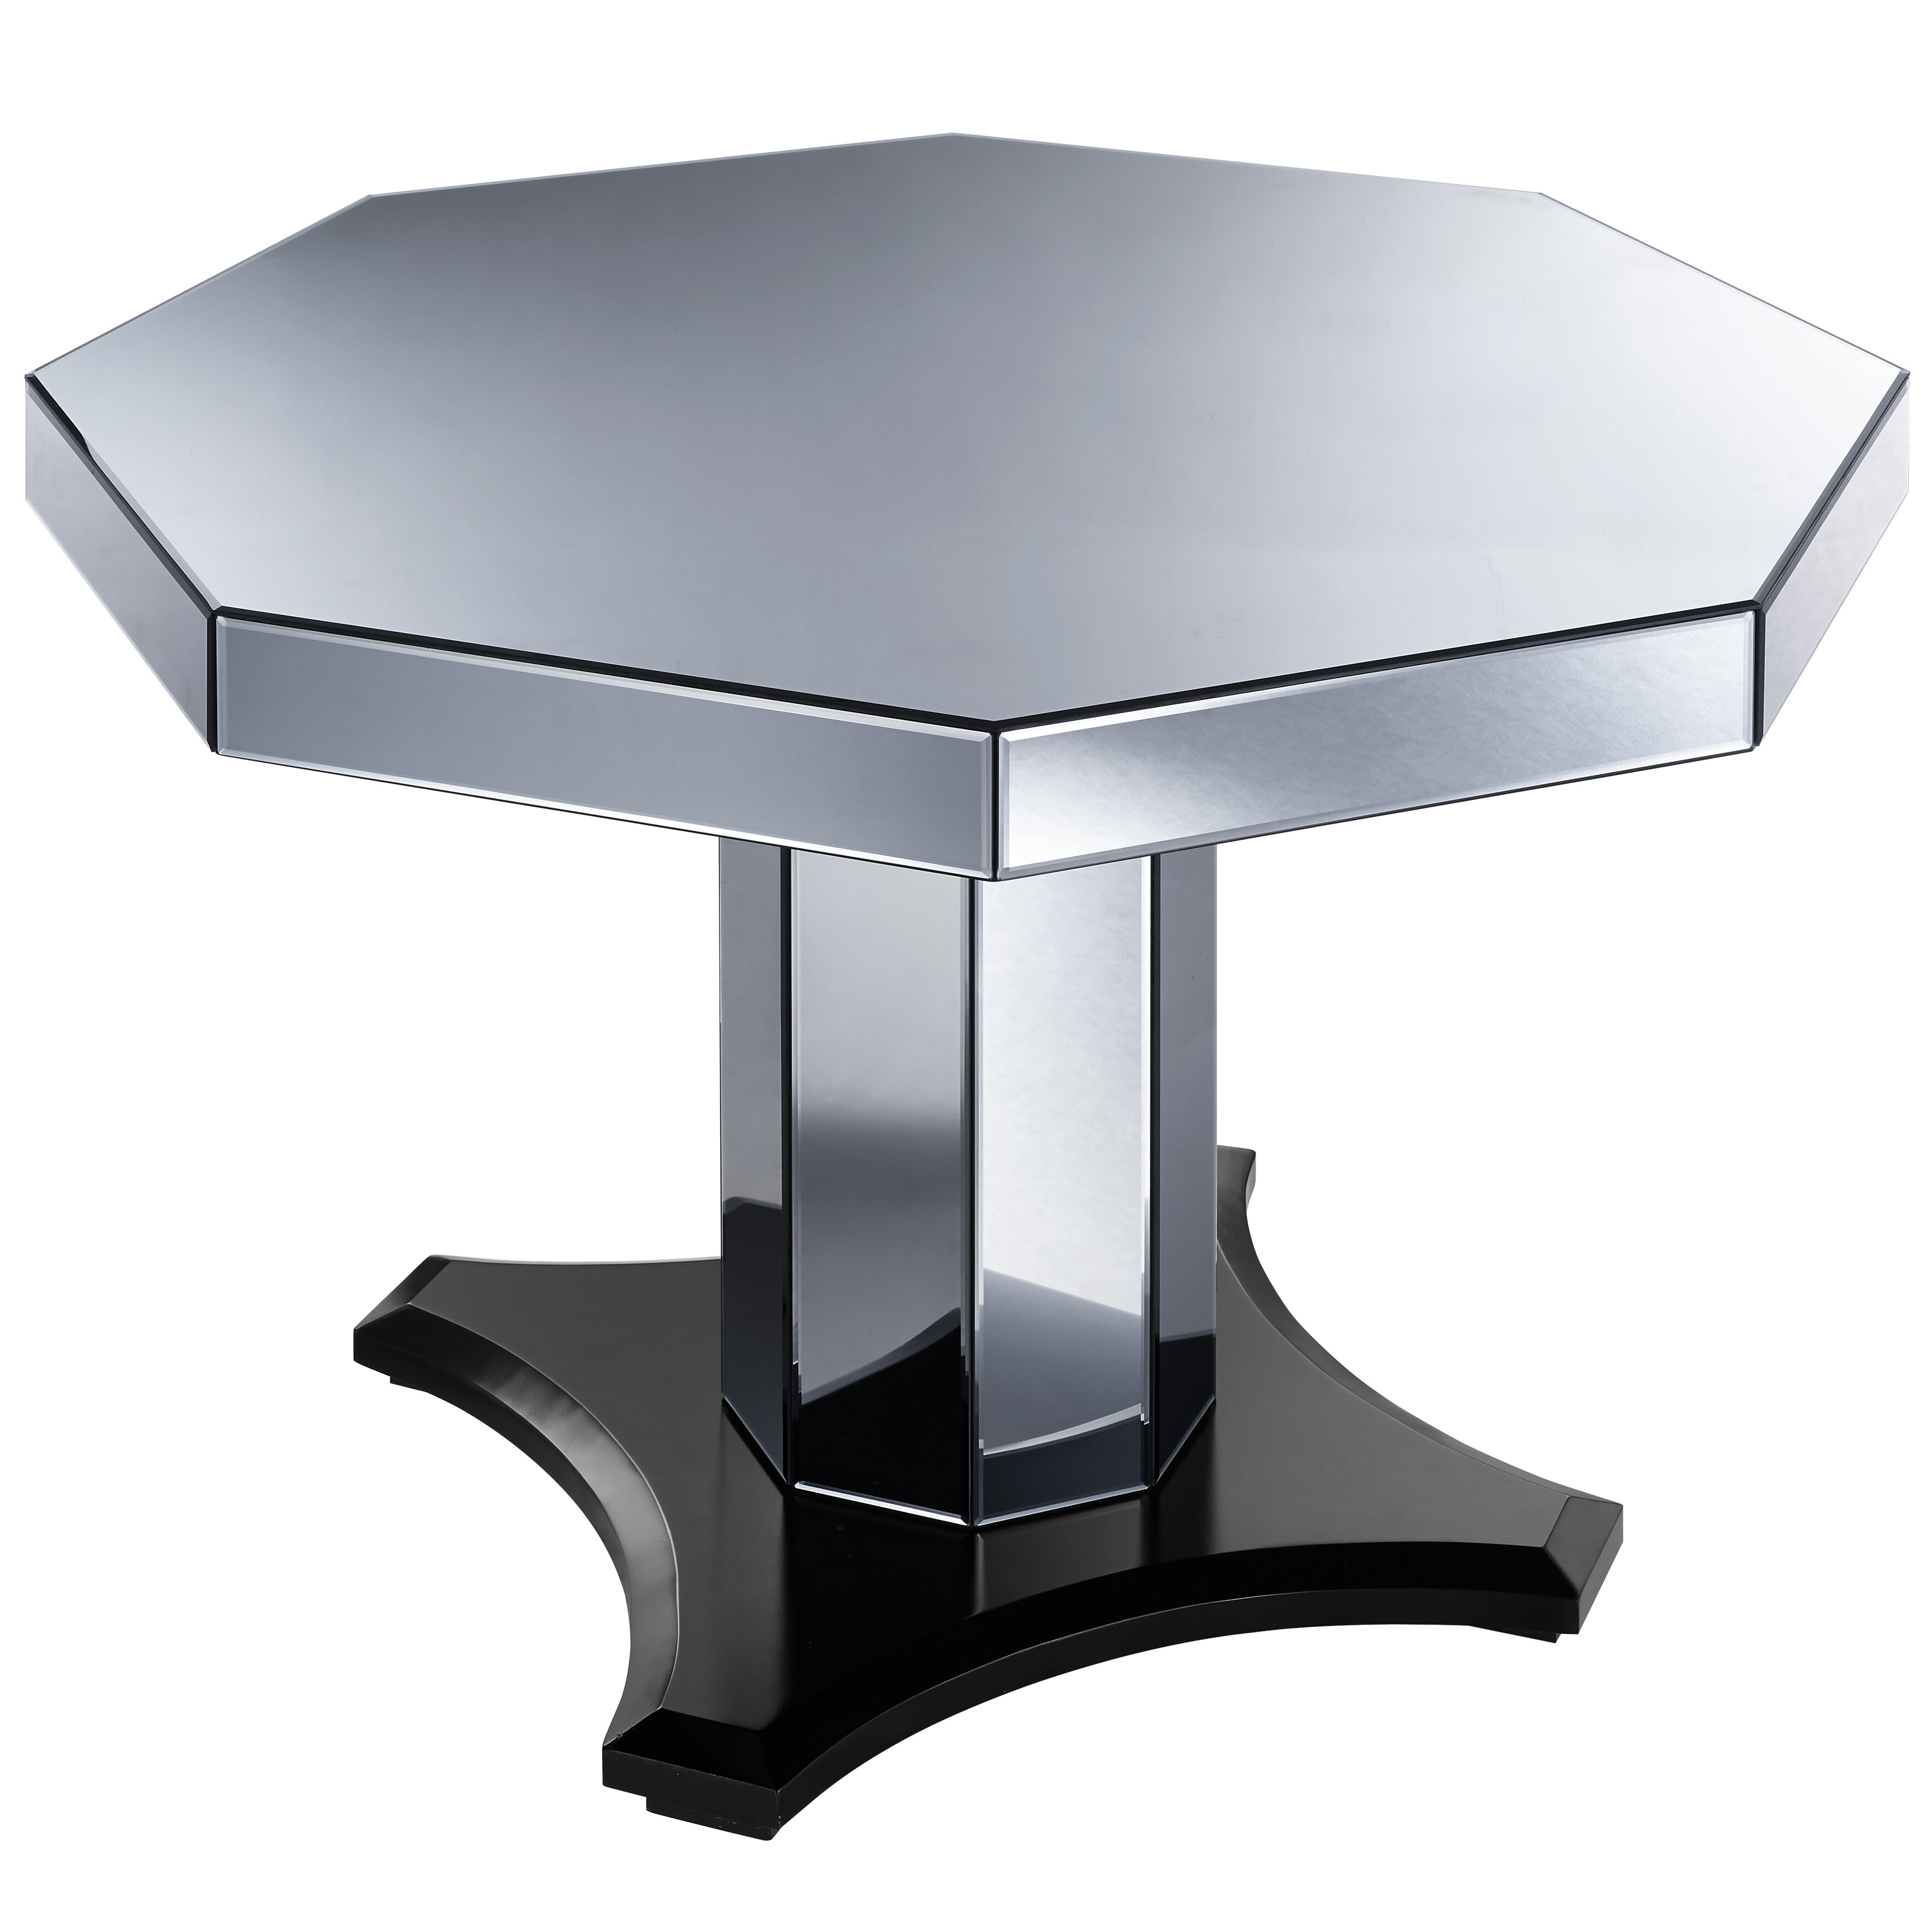 Rosdorf Park Brocklesby Smoked Mirrored Octagon Coffee Table